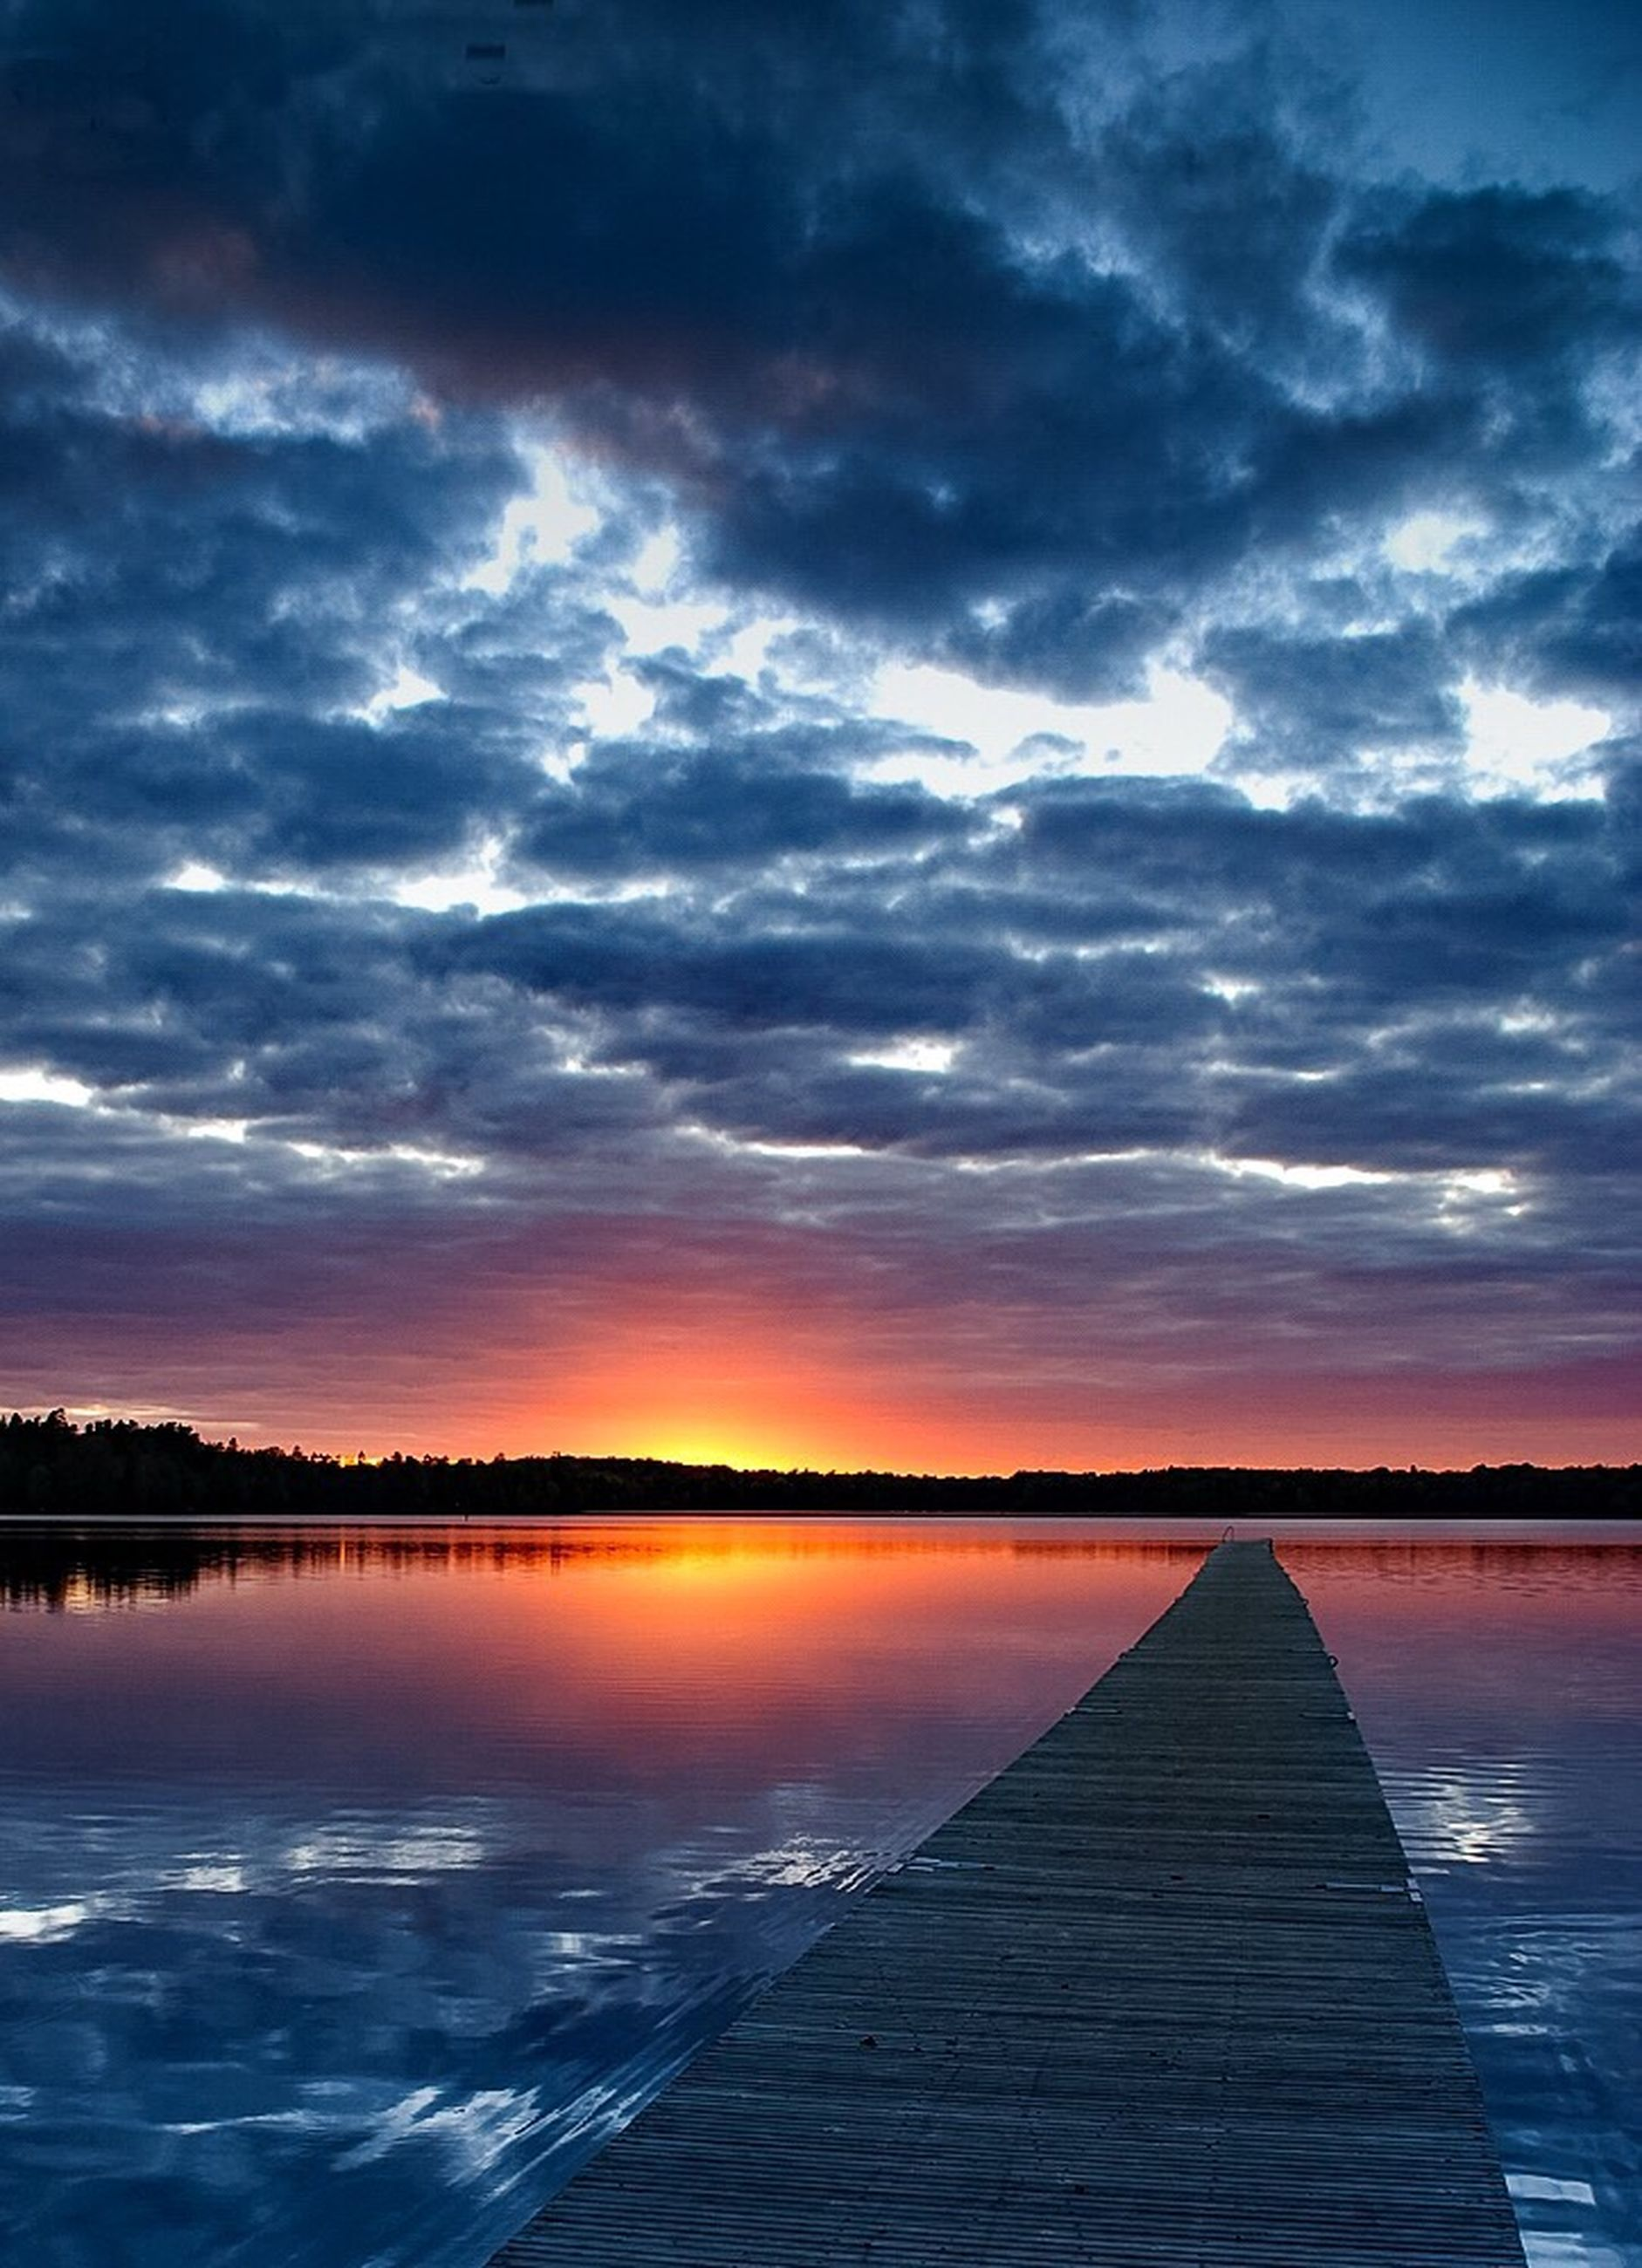 sunset, sky, water, cloud - sky, scenics, tranquility, tranquil scene, reflection, beauty in nature, lake, cloudy, orange color, cloud, nature, idyllic, dramatic sky, pier, waterfront, outdoors, weather